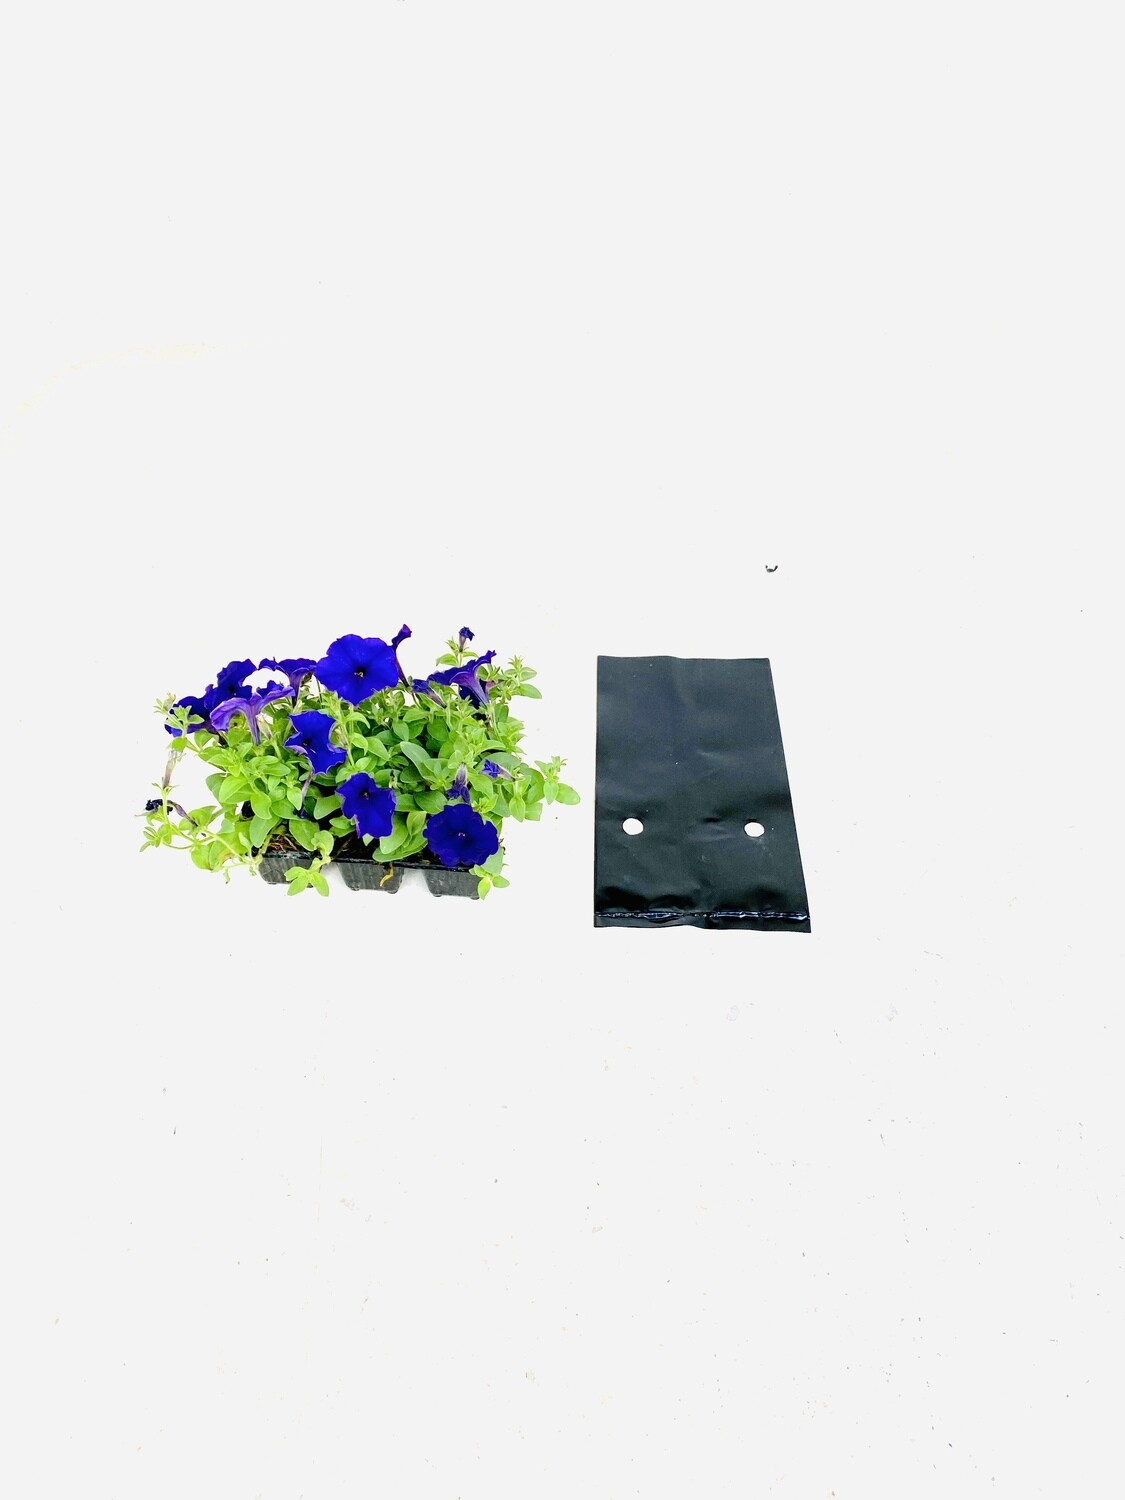 5 Liter Plastic Planting Growing Bags. 100 Micron.  R57 for 25 bags.  Diameter 175mm x Height 220mm Sold in packs of 25